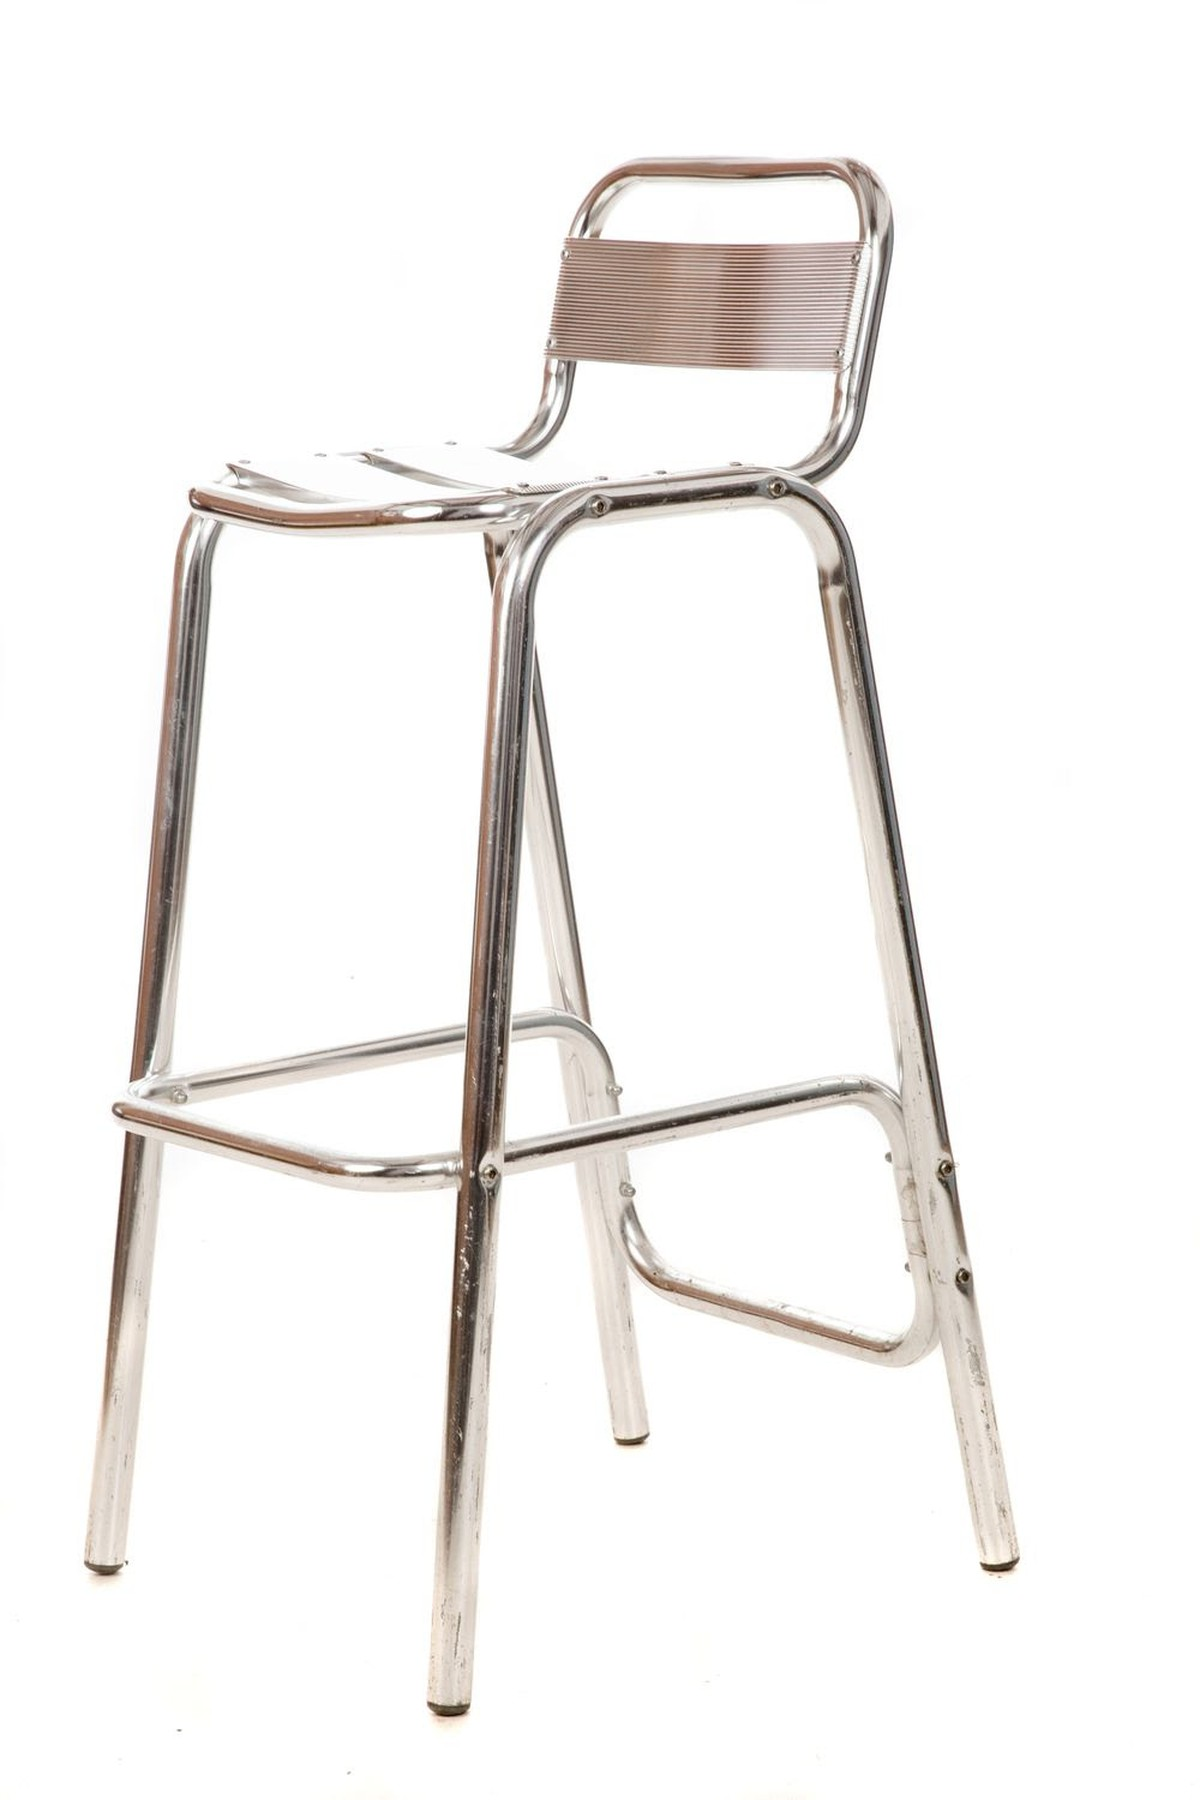 Secondhand Chairs And Tables Cafe Or Bistro Chairs 26x